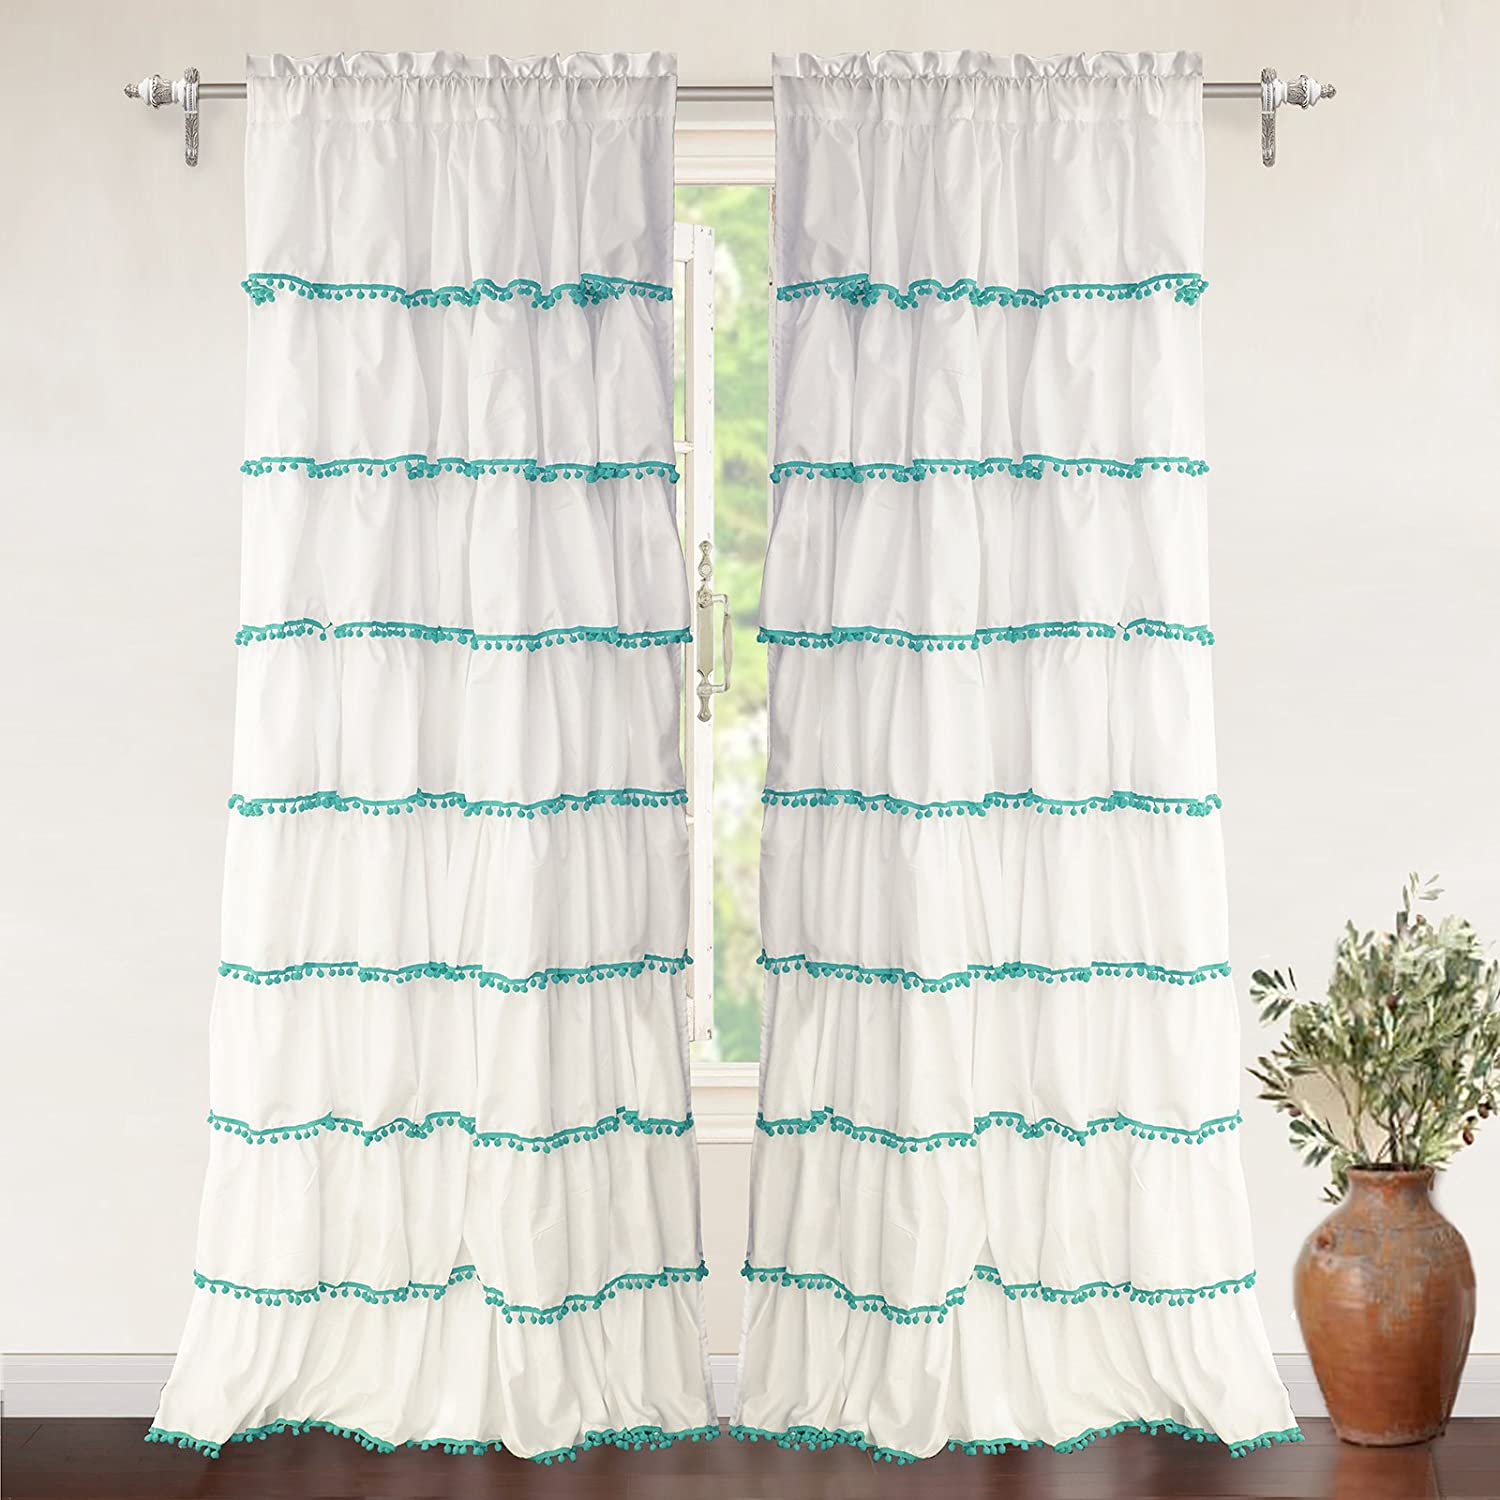 x panel curtain l ivory polyester drapes carmen window sheer outdoor single curtains elrene p indoor w in